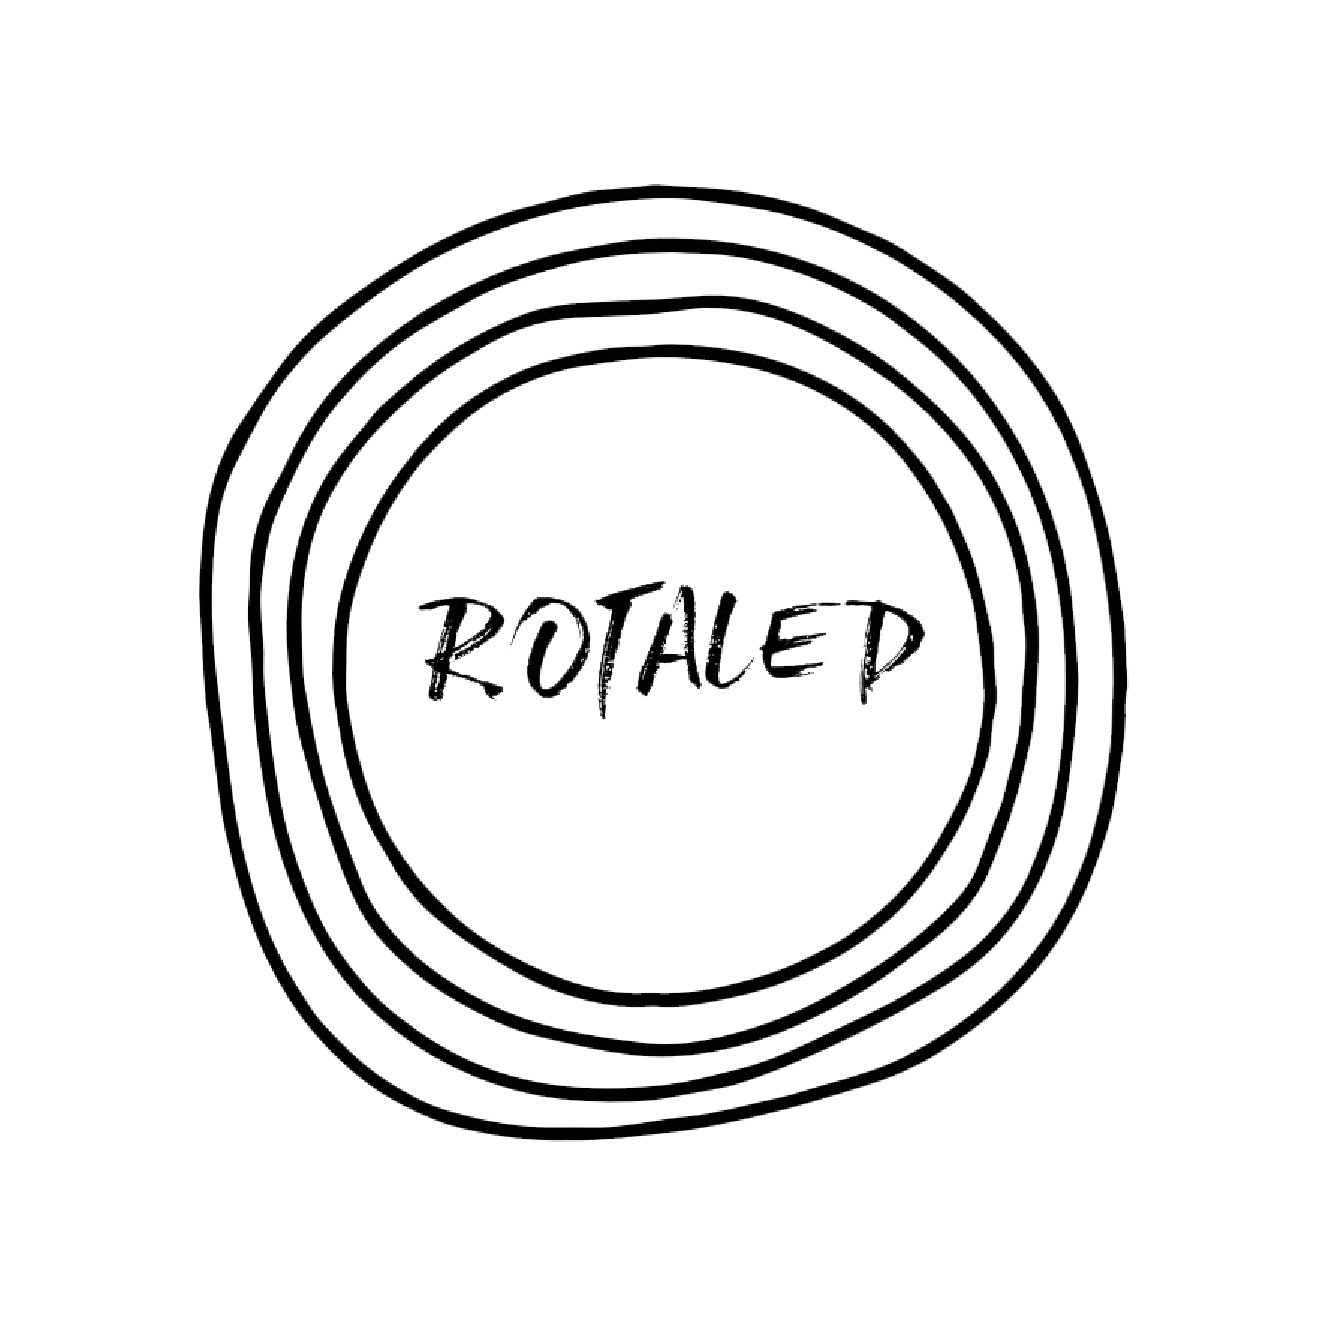 ROTALED